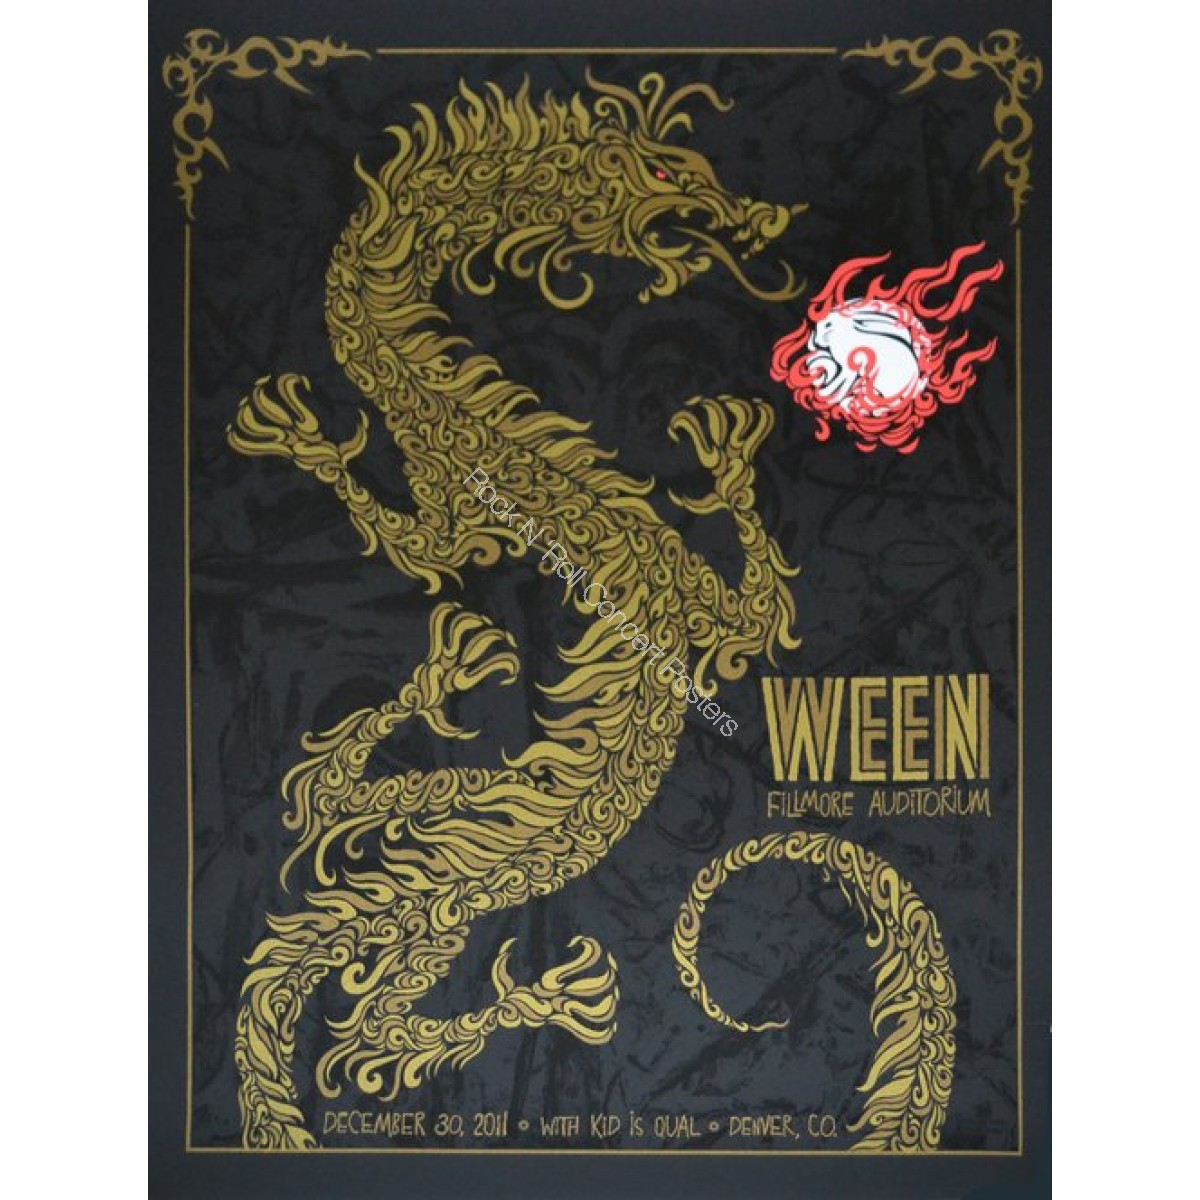 Ween at the Denver Fillmore 12/30/11 Official 1st edition print By Todd Slater